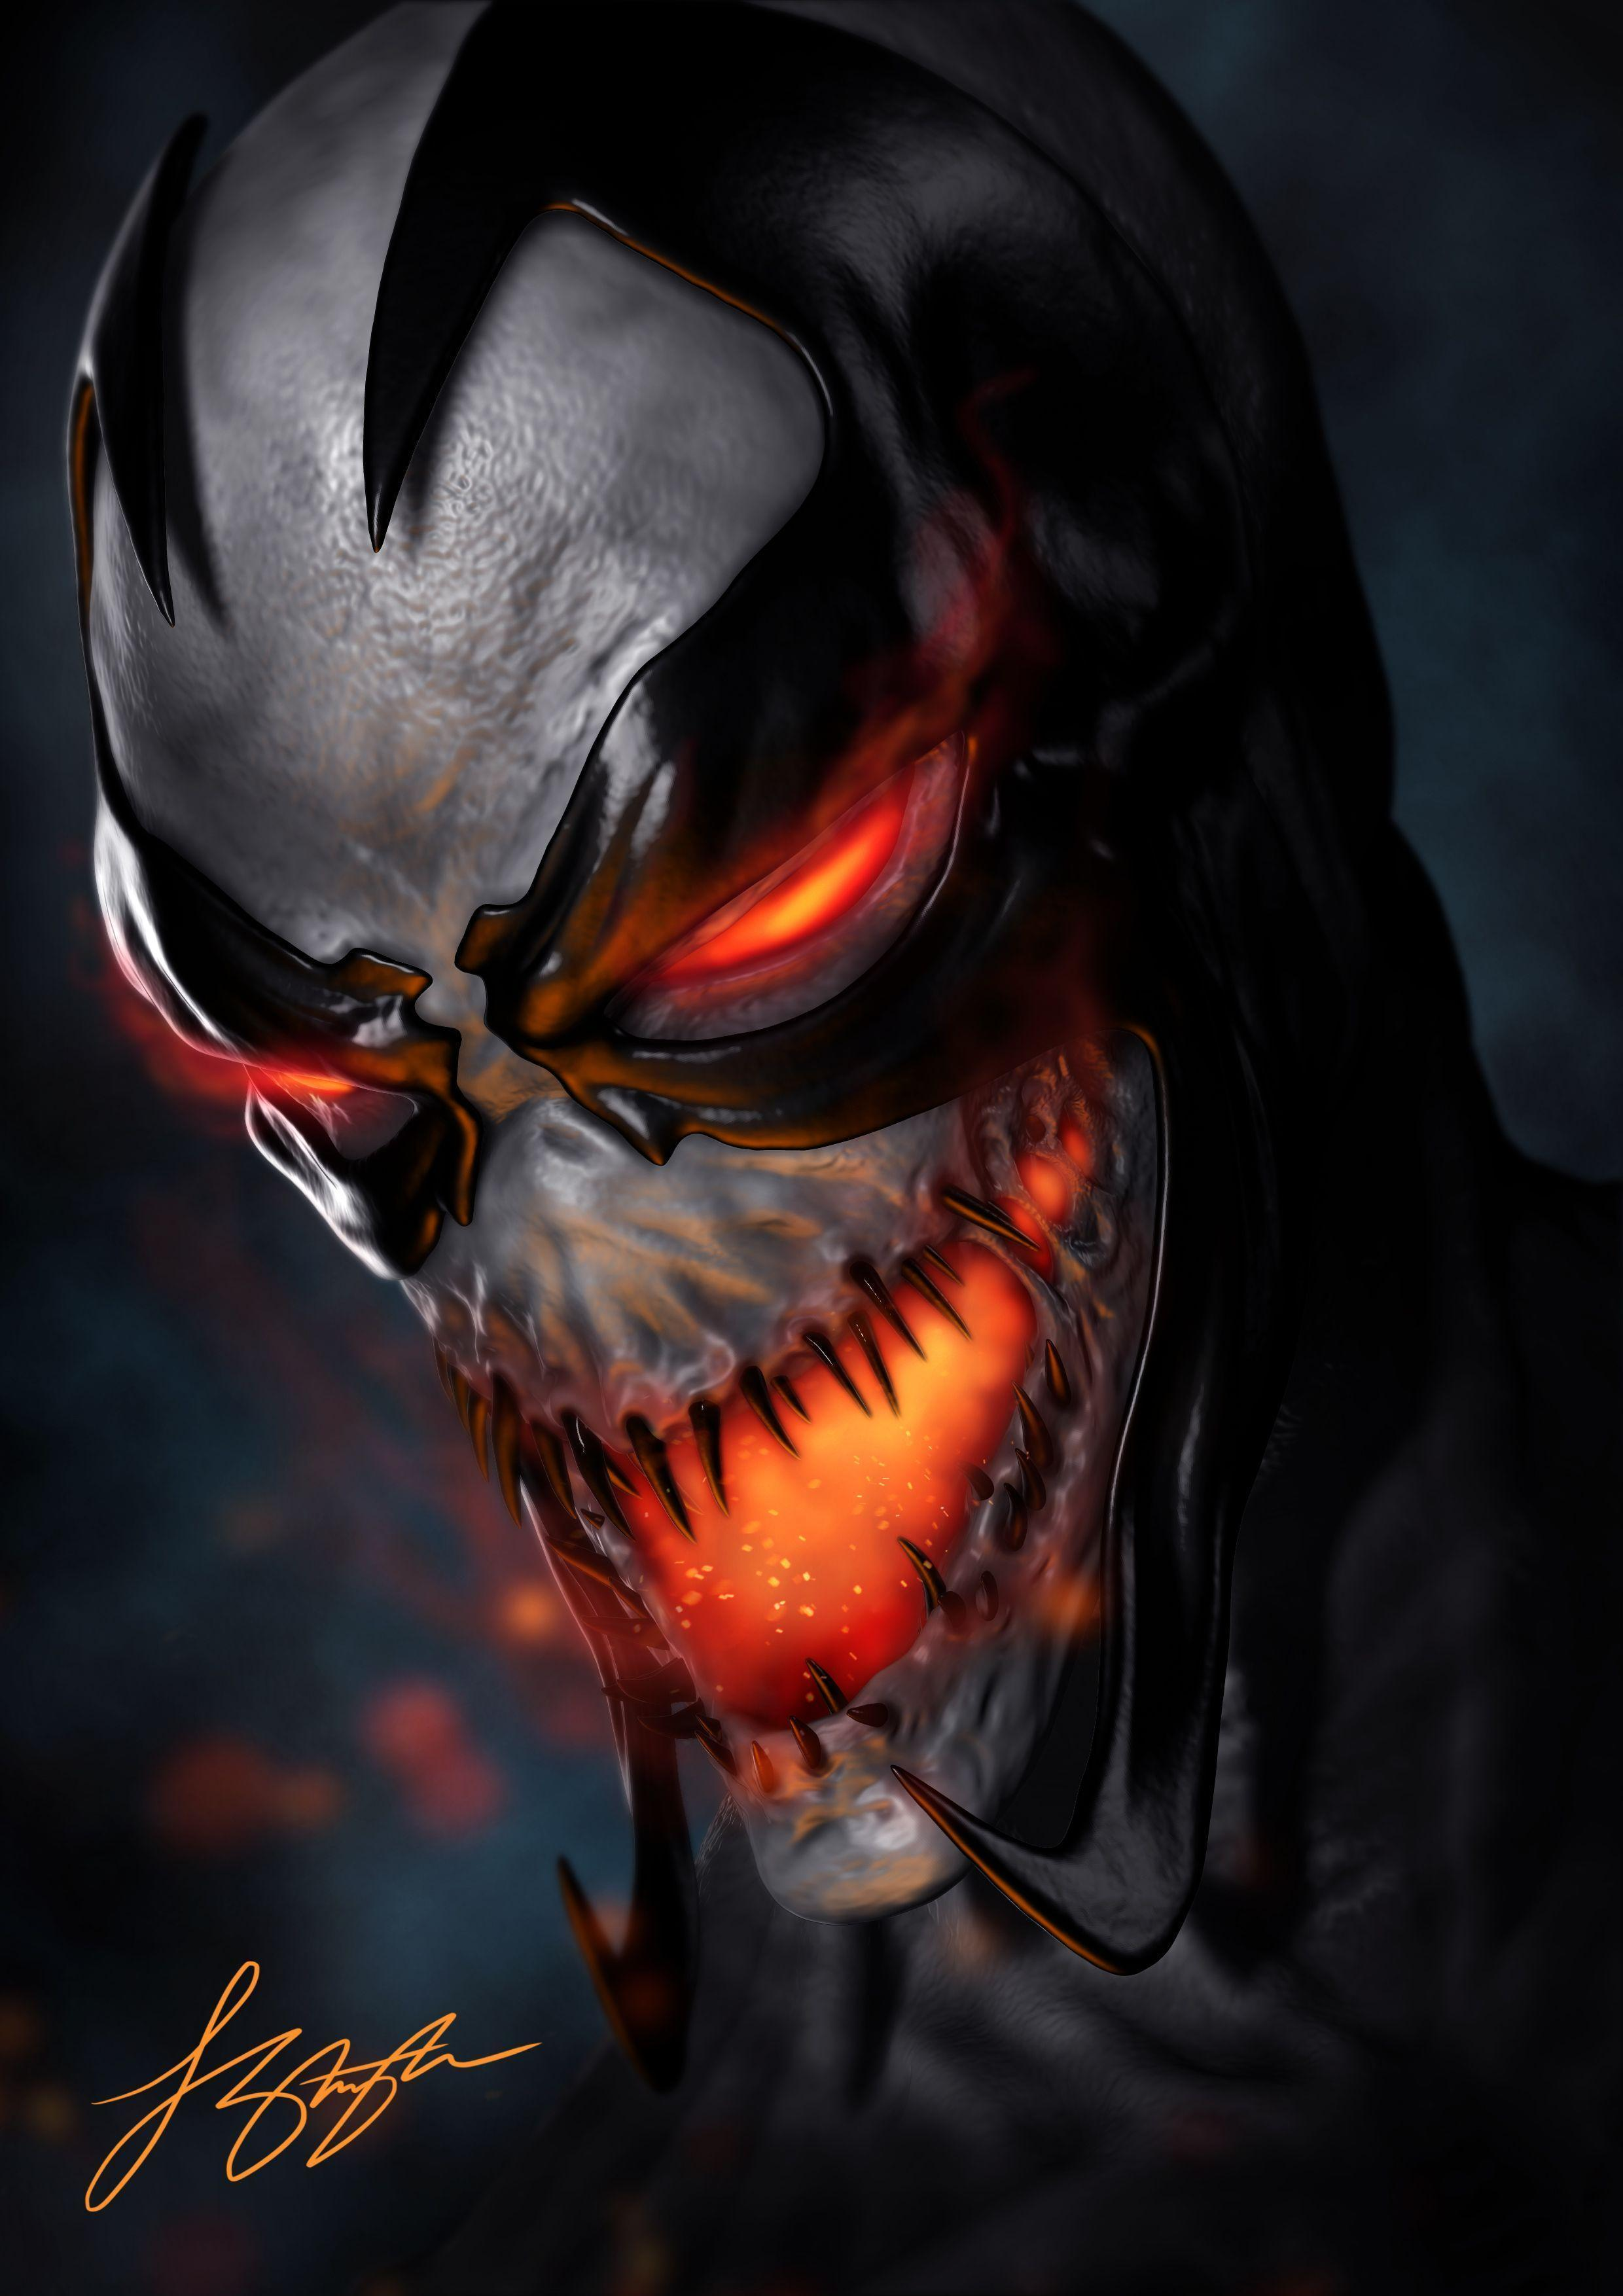 Wolverine Animated Hd Wallpapers Anti Venom Wallpapers Wallpaper Cave